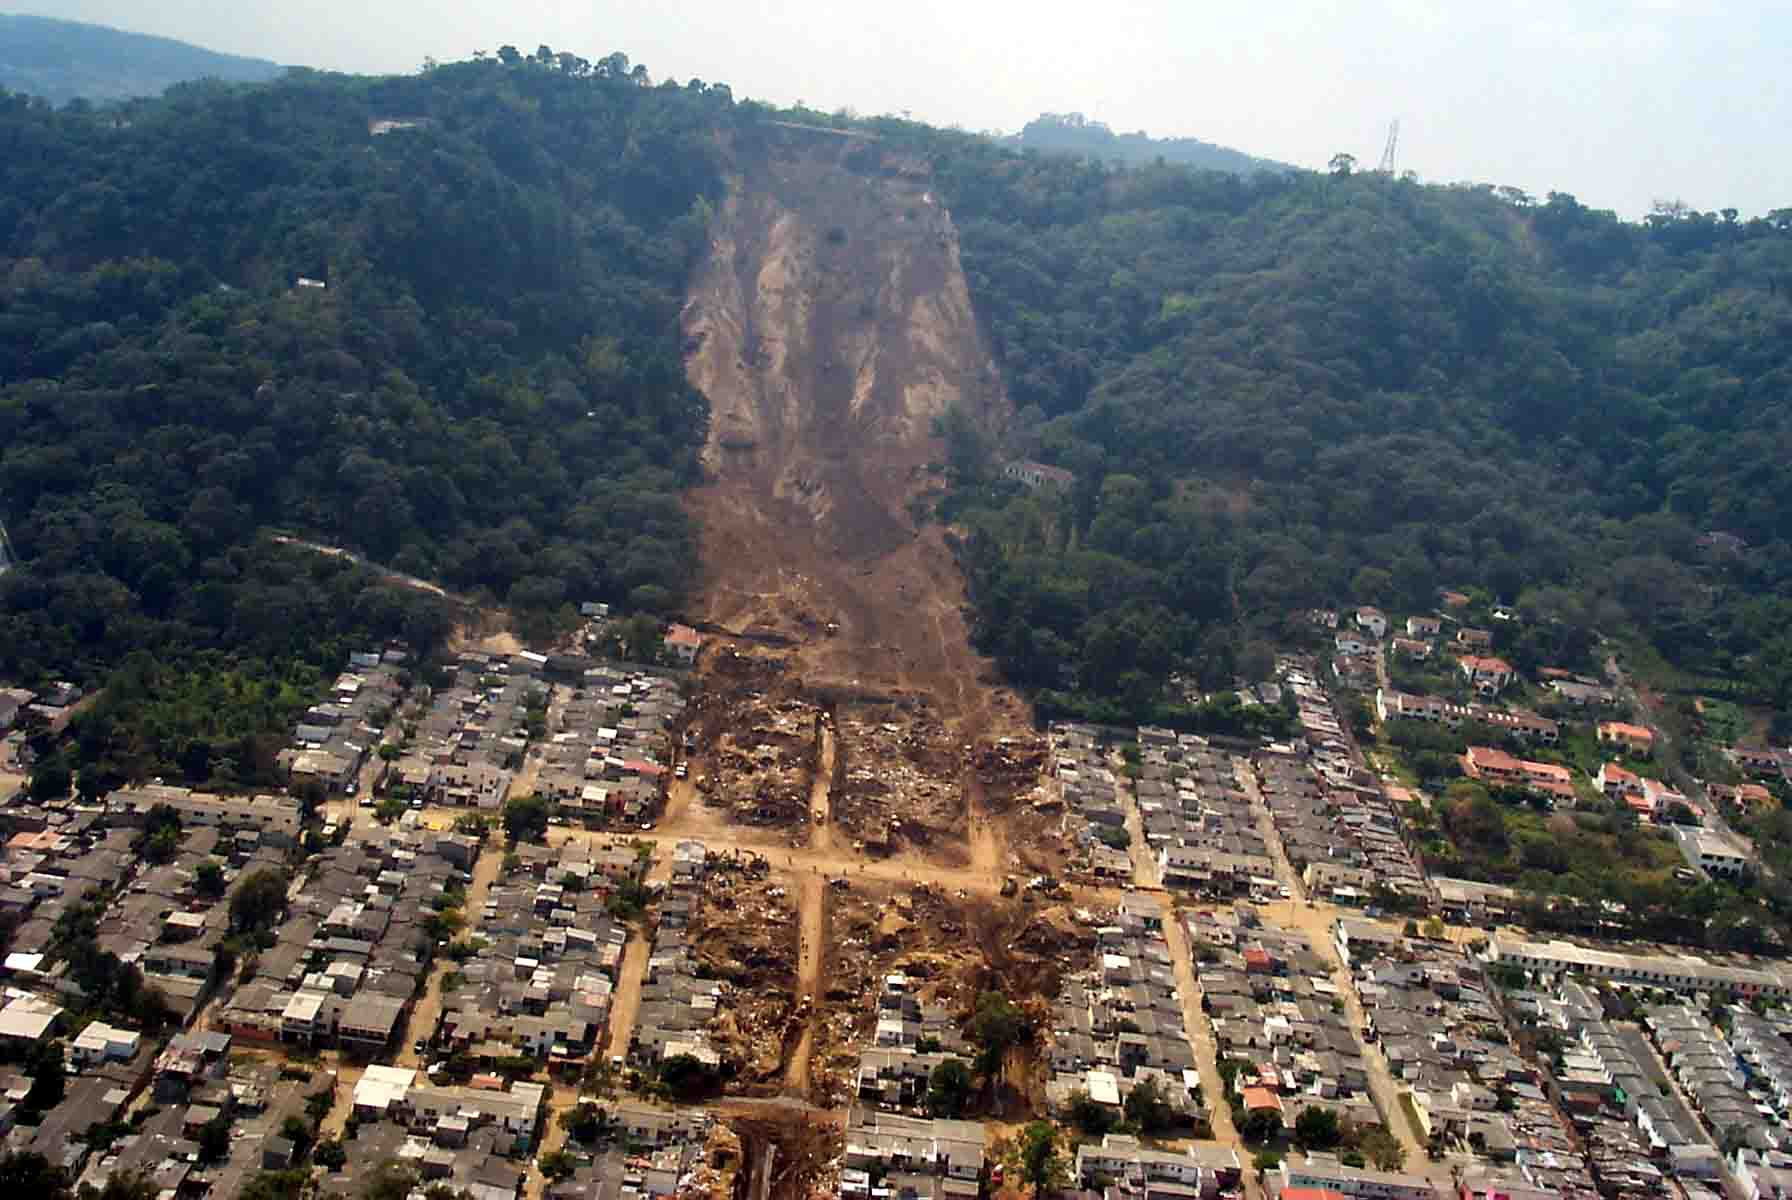 Aerial view of landslide that buried Colonia Las Colinas.